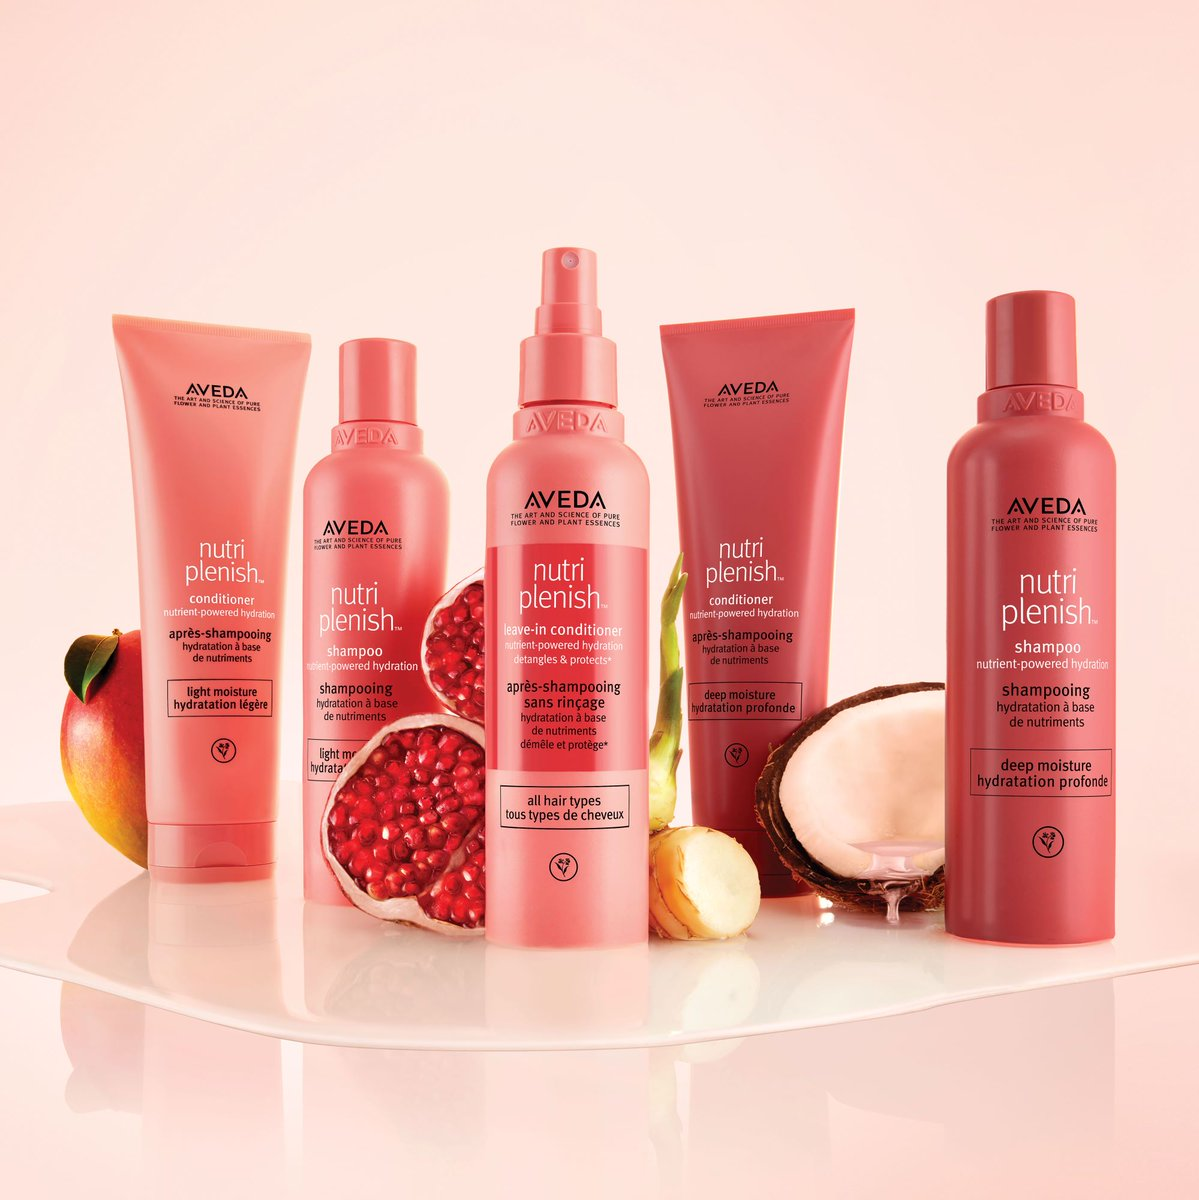 Our latest blog is up! Read all about Aveda's new range, Nutriplenish here > http://bit.ly/2OaCq3o #Aveda #Nutriplenish #Hydrate #LightMoisture #DeepMoisture #Superfood #Nutrientspic.twitter.com/3w4GjouUIJ